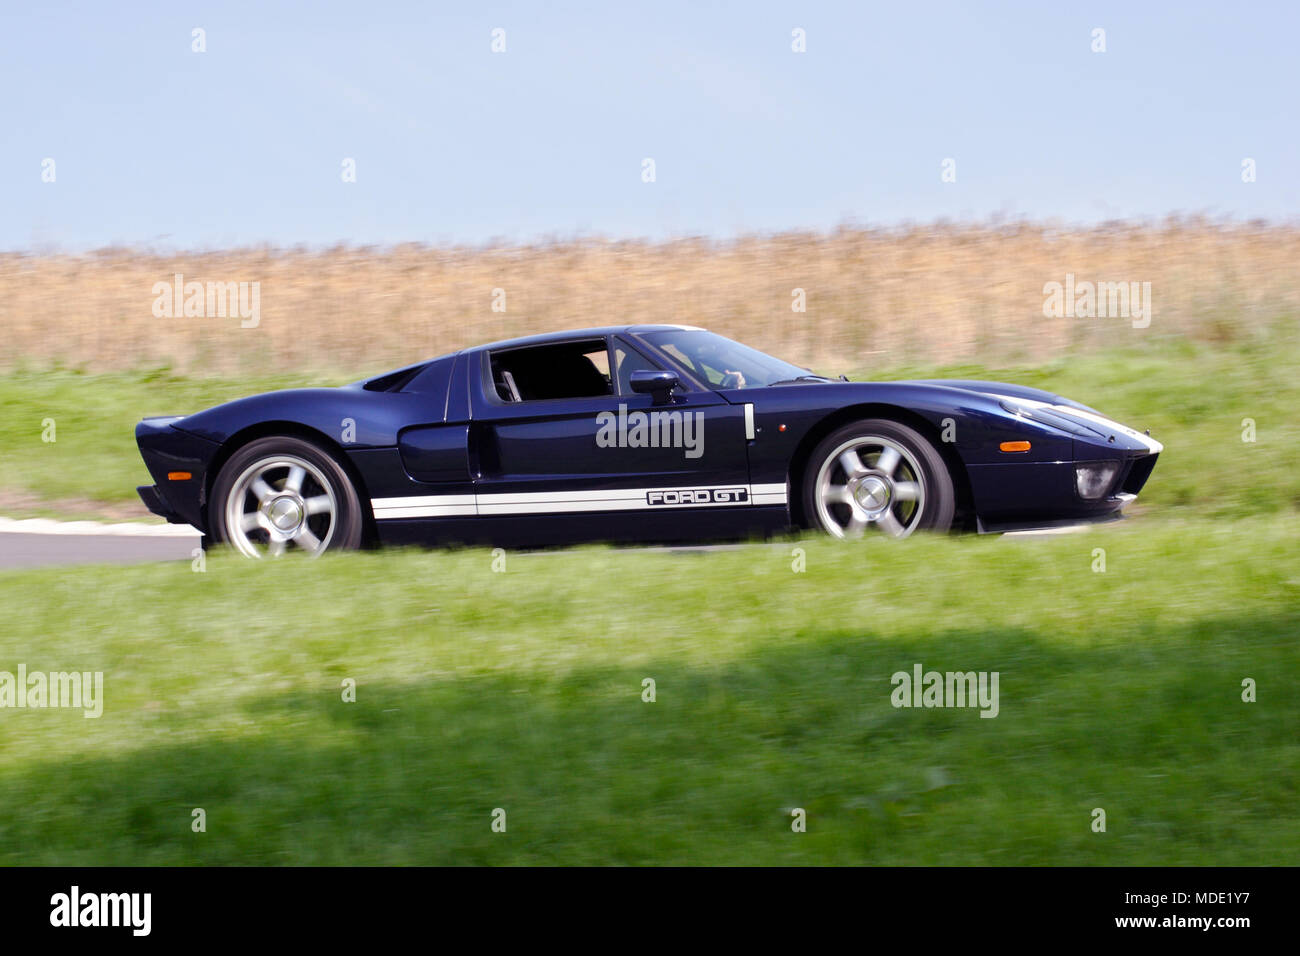 Low Angle Profile Side View Of Navy Blue Ford Gt Supercar Hypercar Driving